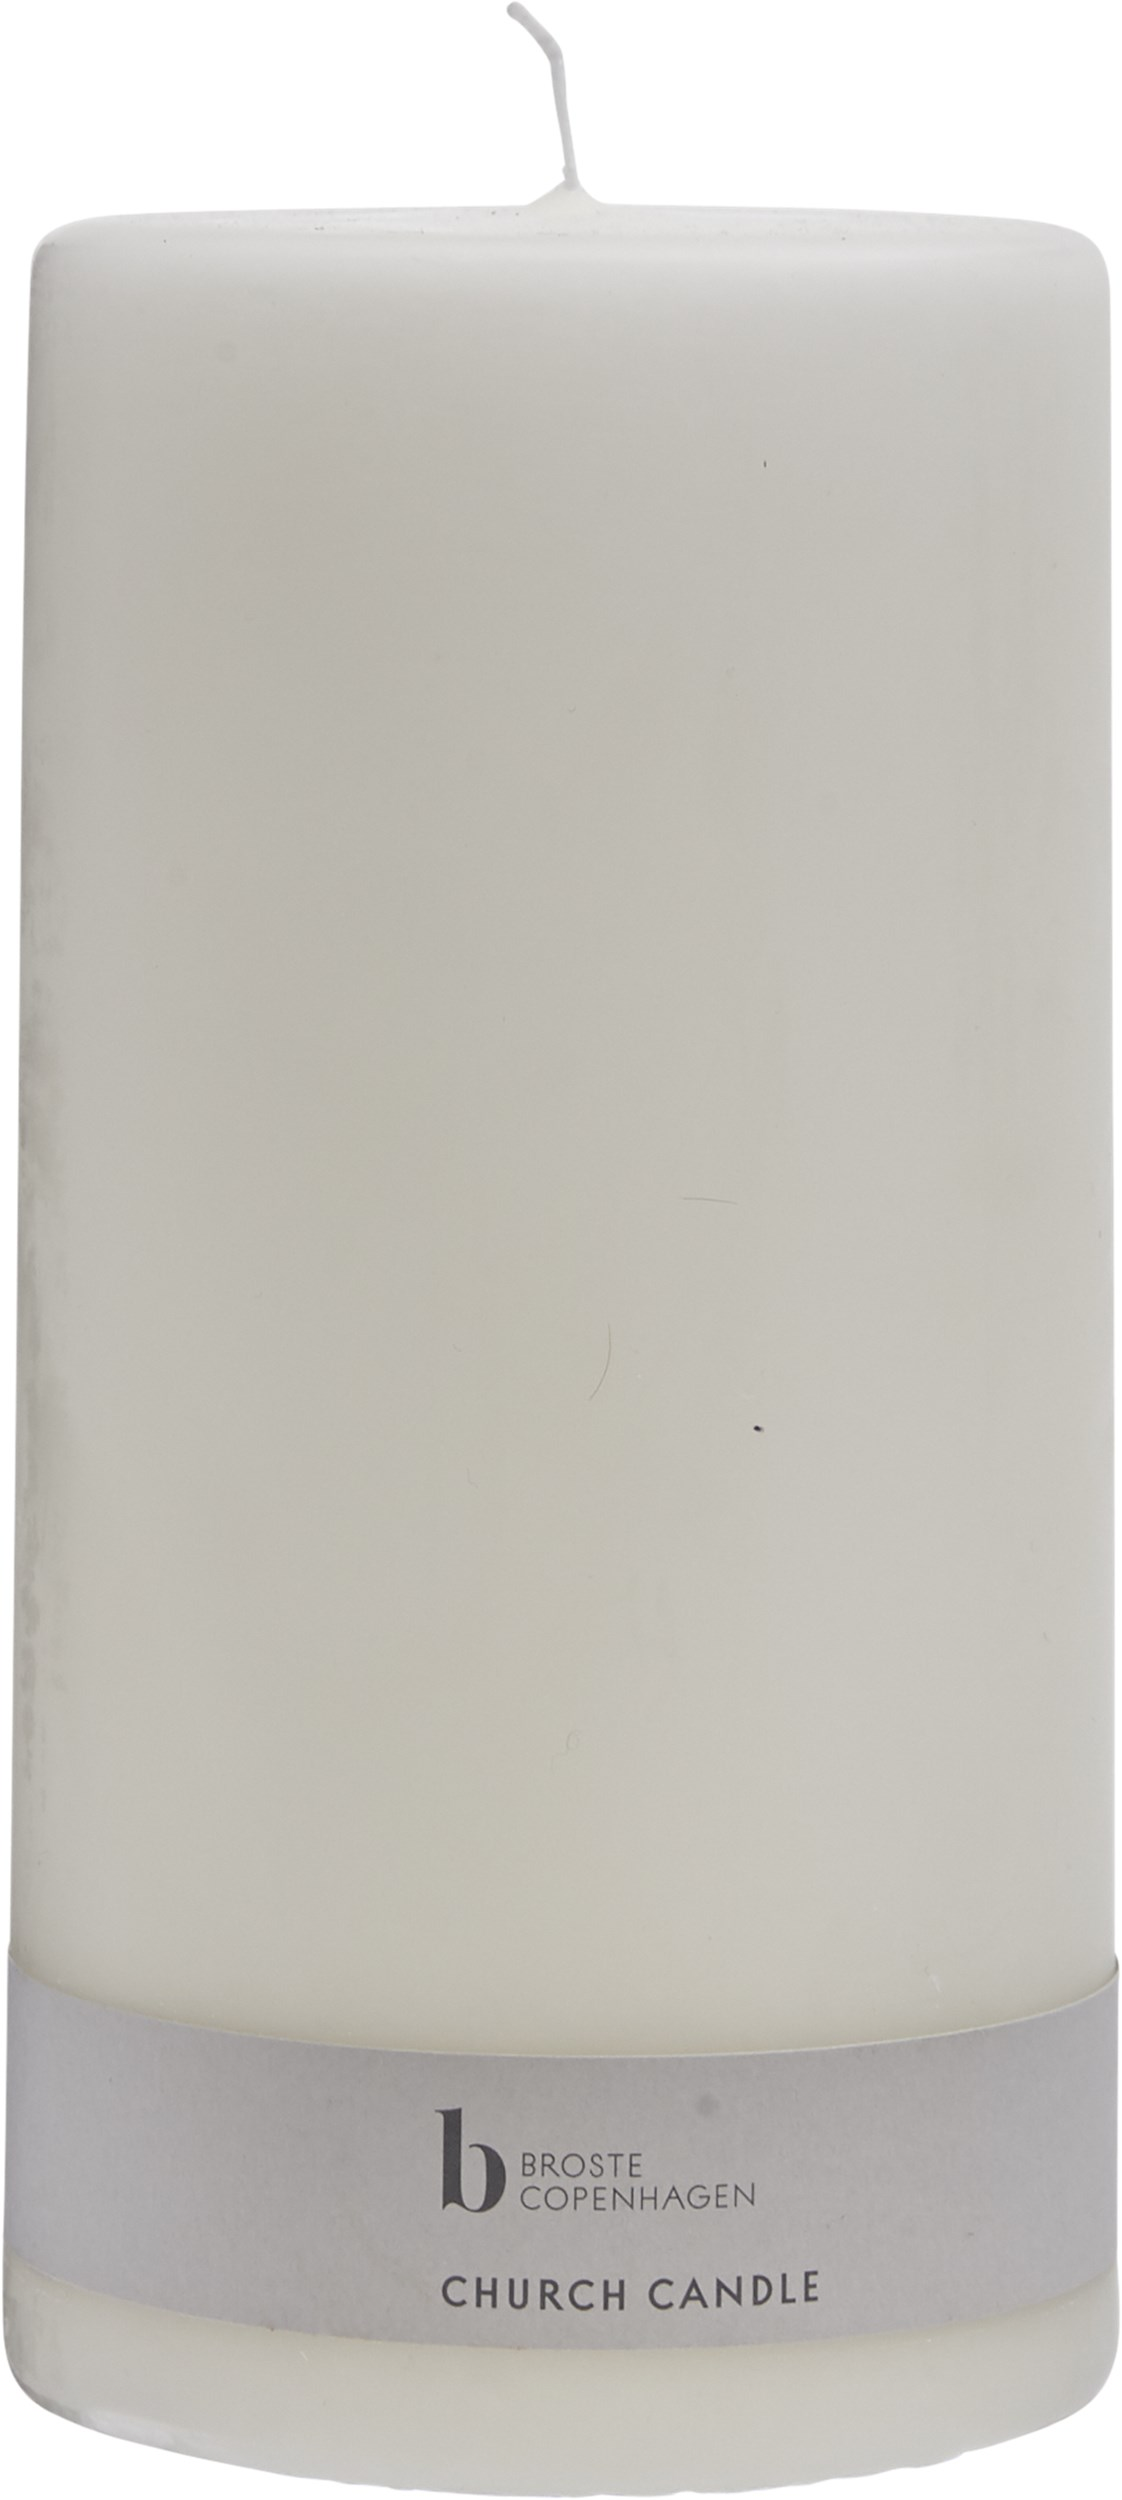 Alter Blockljus 20 x 10 cm 20 x 10 cm - Off-white paraffin